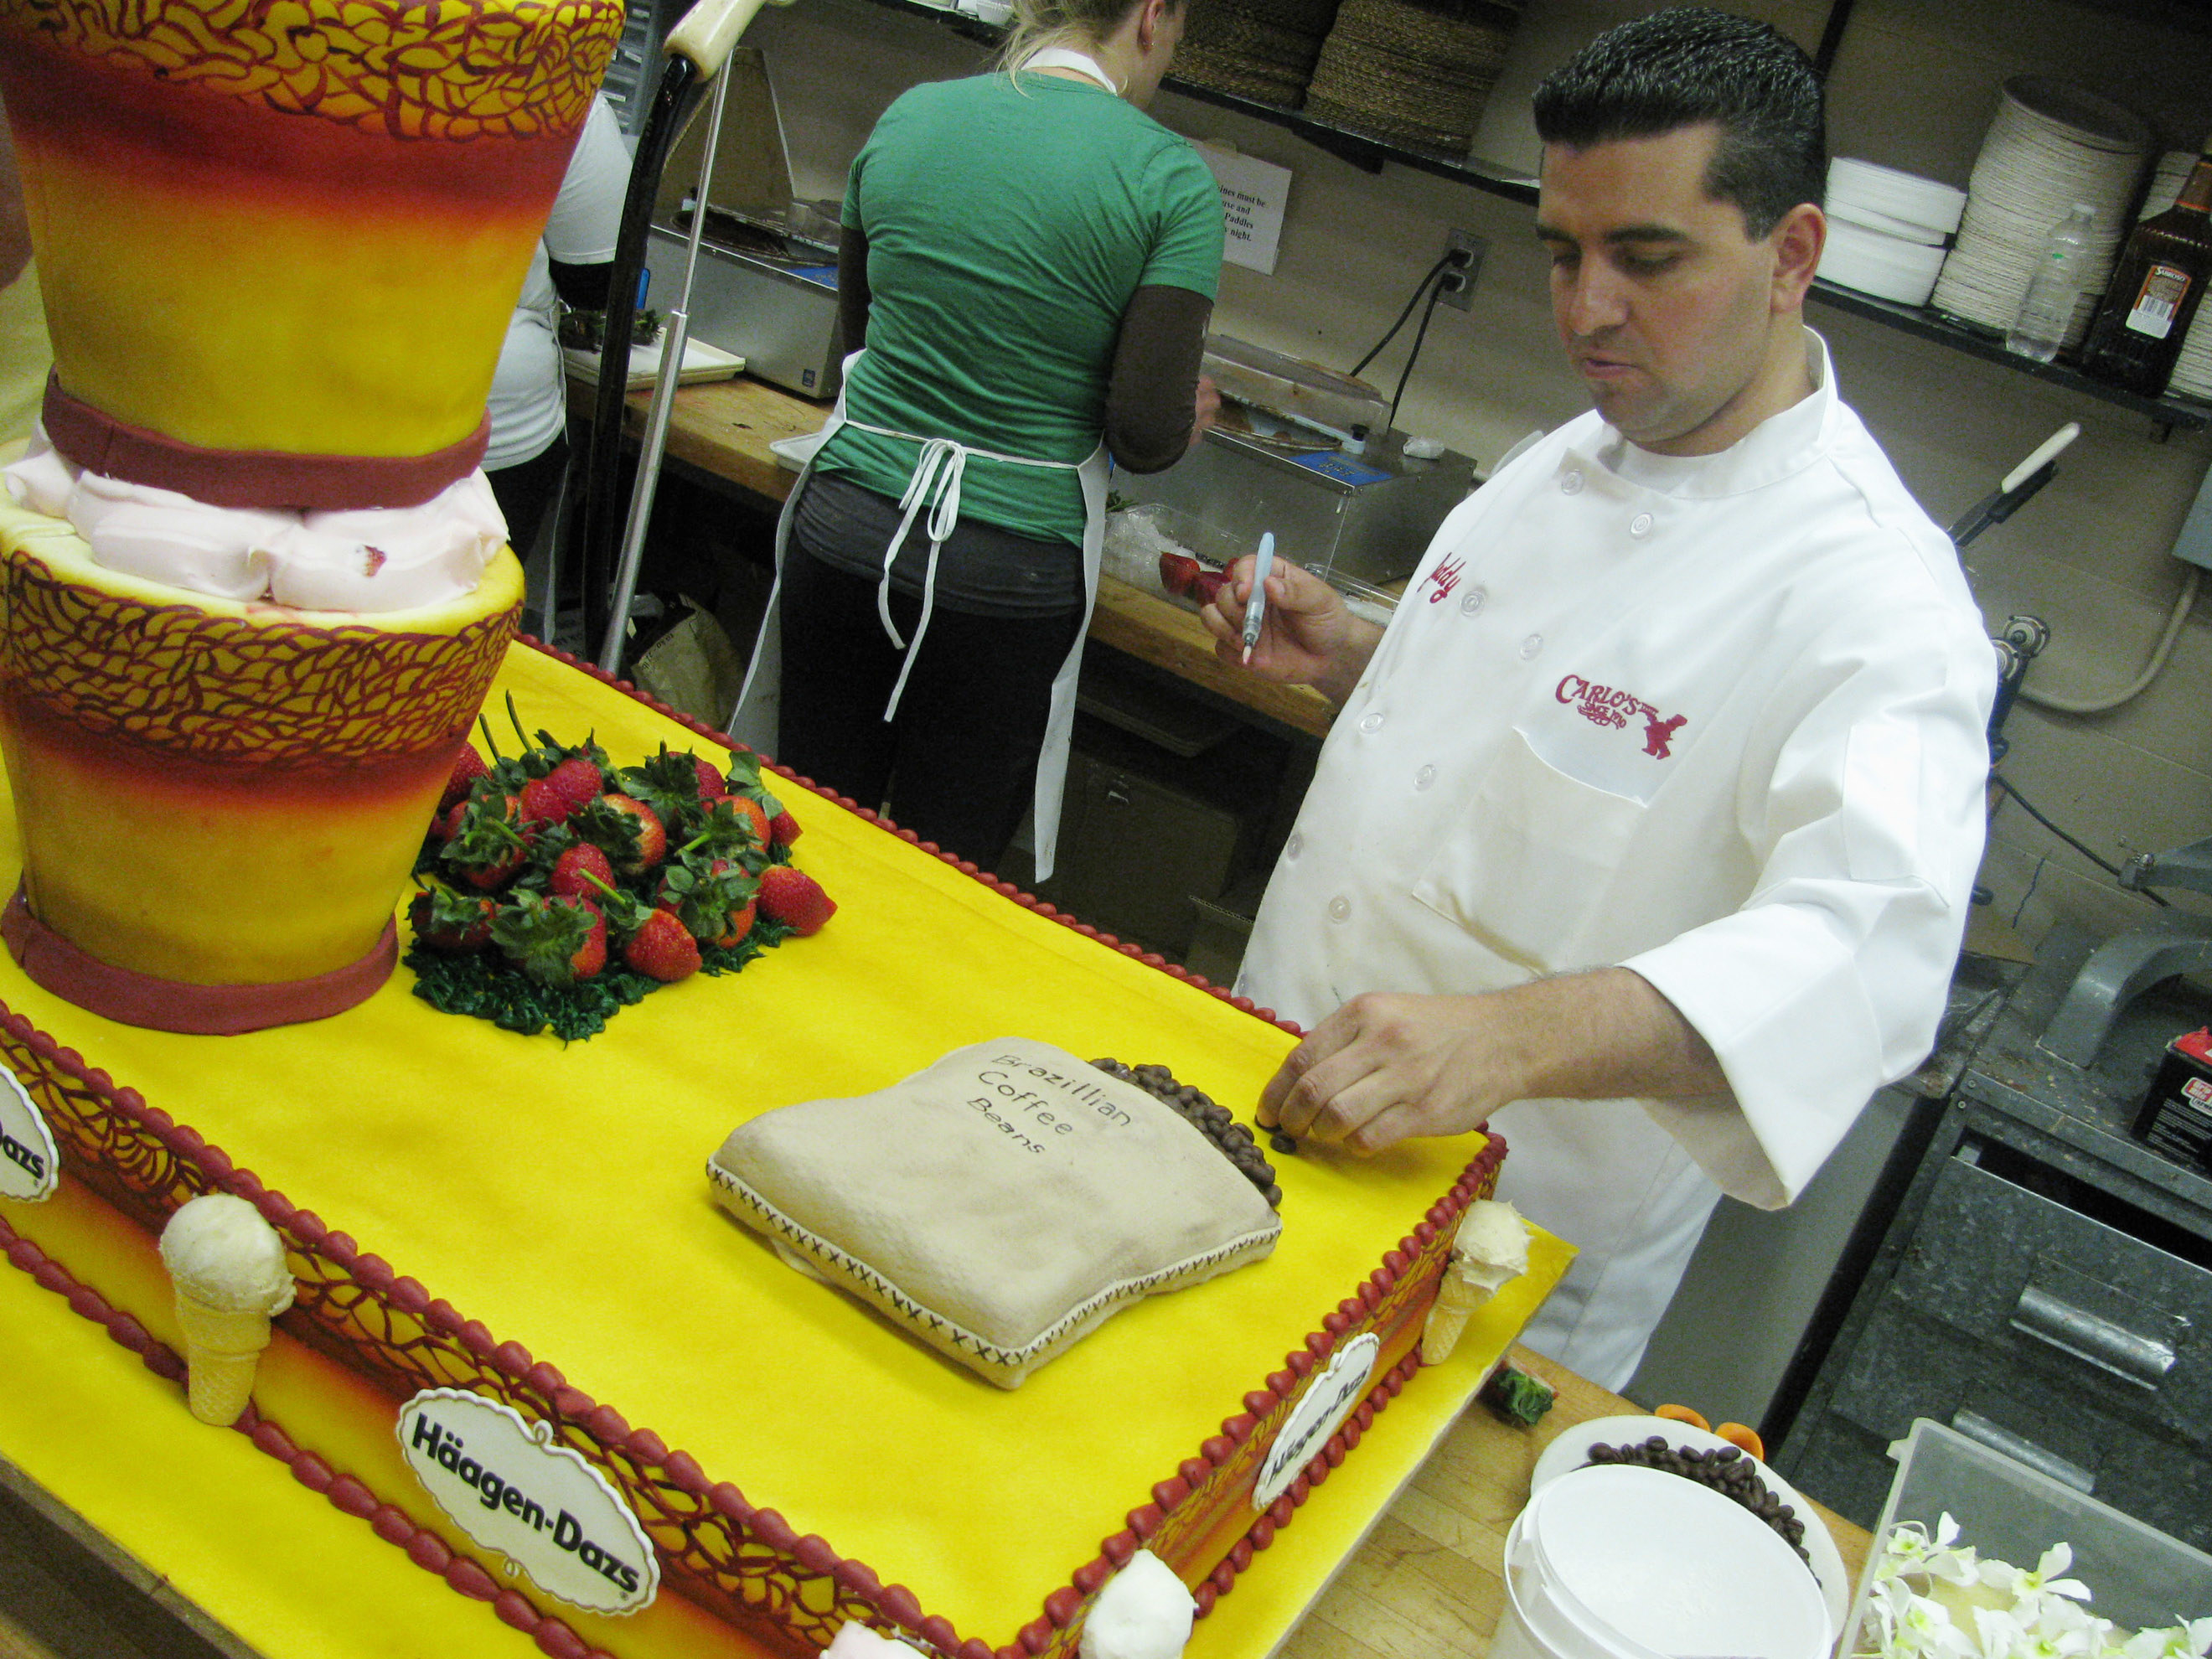 Buddy decorates a huge and elaborate cake